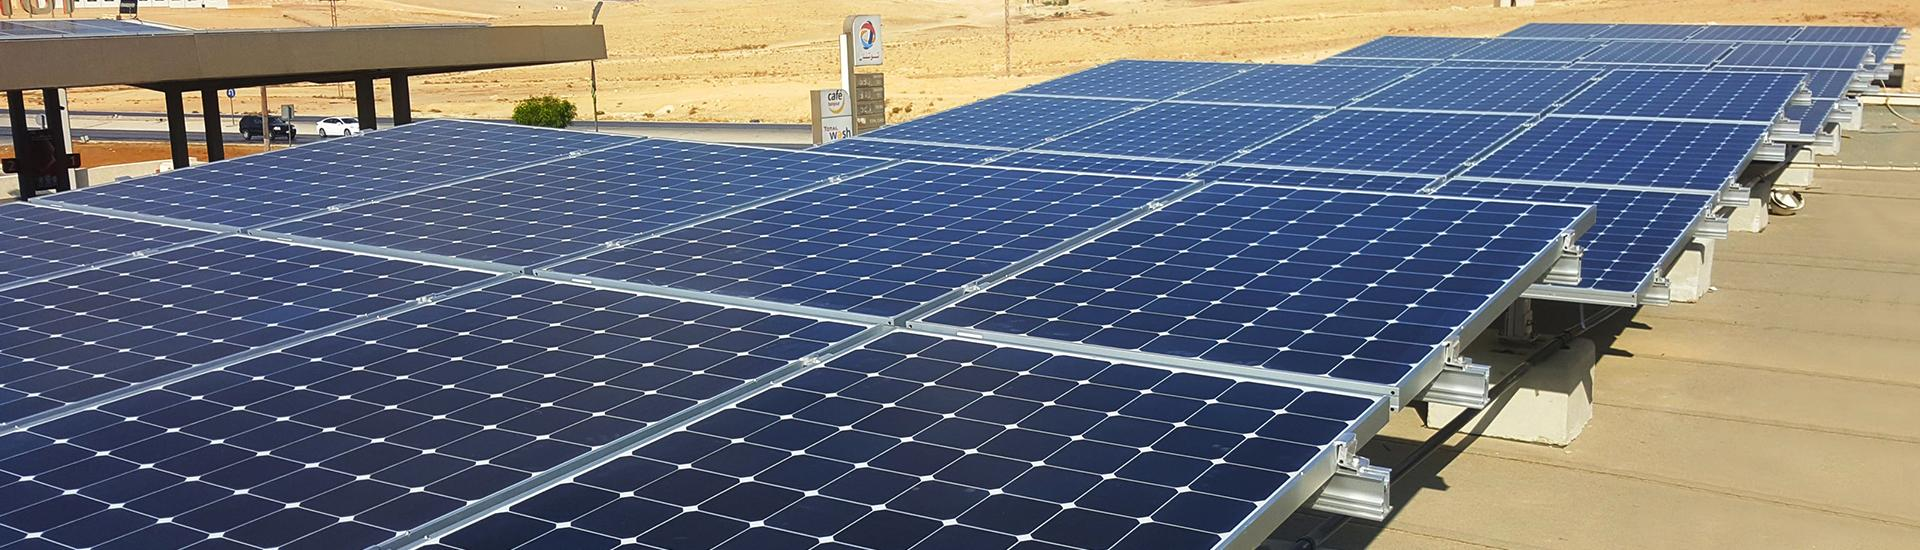 An installation of SunPower Solar Panels on the rooftop of a Total service station in Jordan.